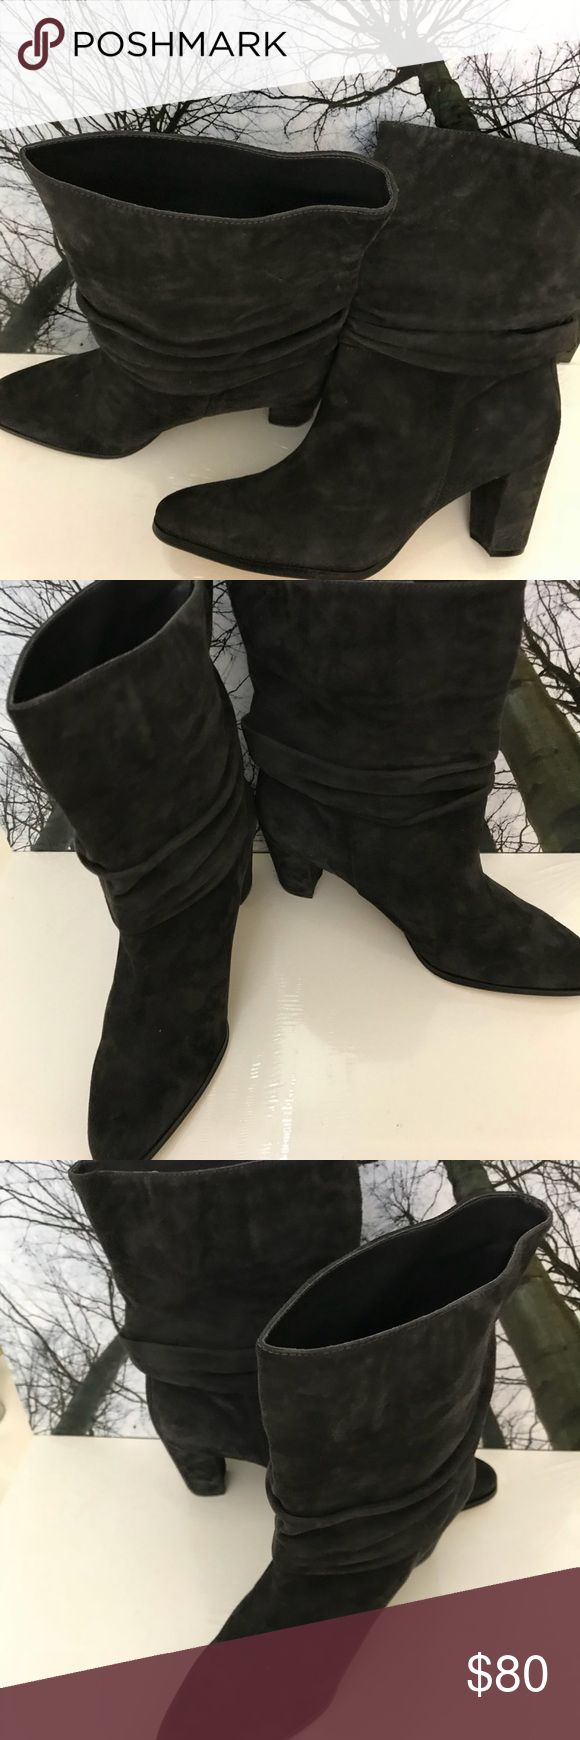 "NWOT- Authentic- Suede Leather Calf Boots NWOT- Authentic Ivanka Trump Suede Leather Calf Boots in Excellent Condition, brand New Pair. Heel:3"" Size:9 Ivanka Trump Shoes Heeled Boots"